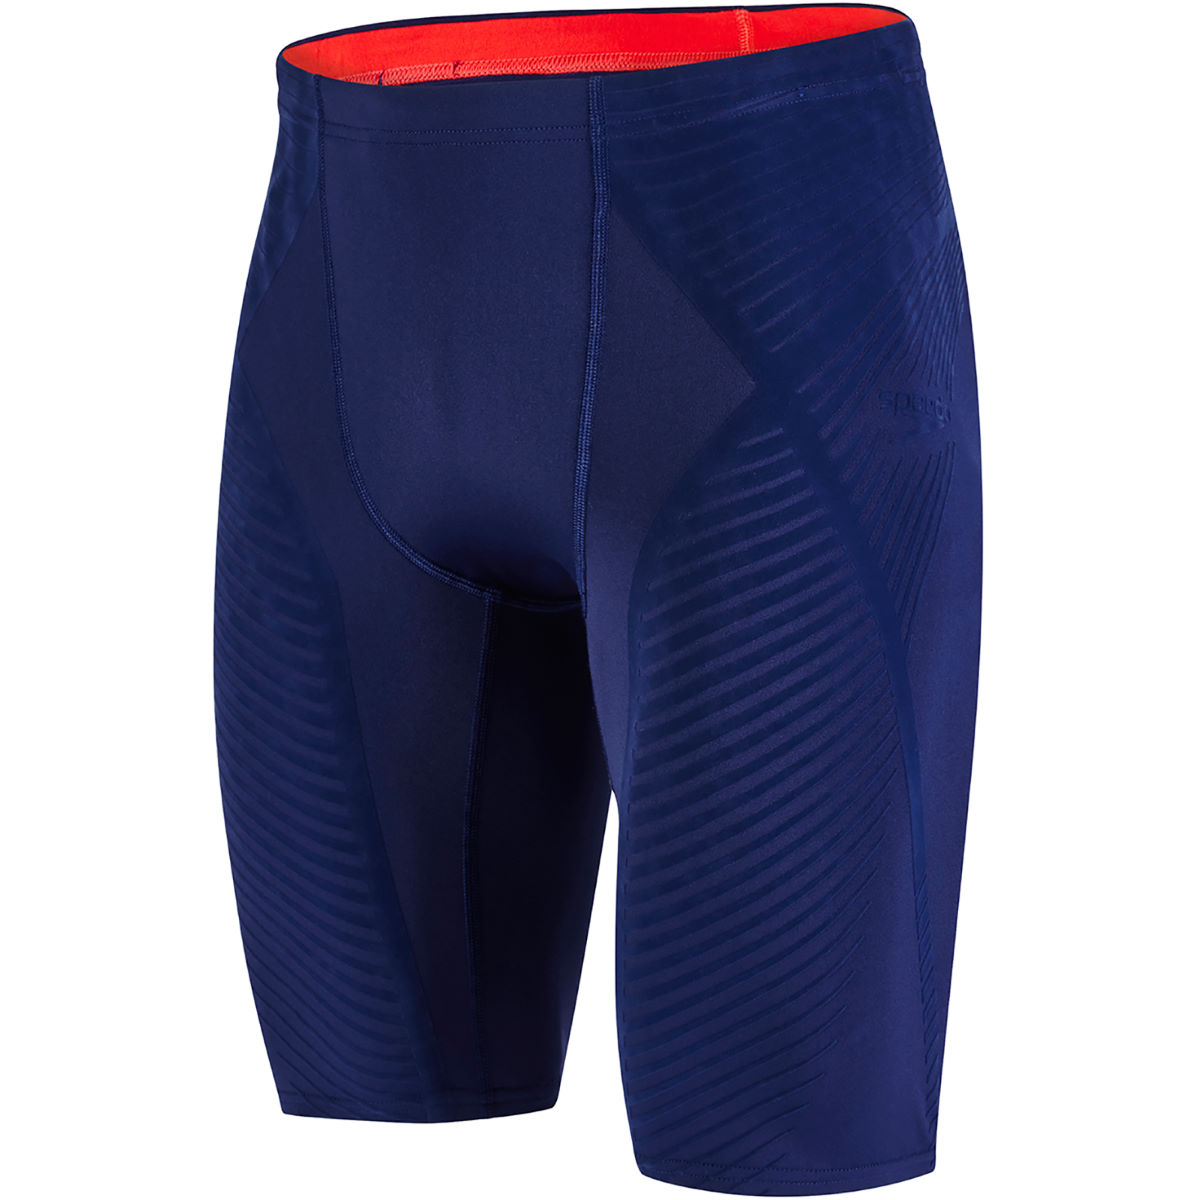 Jammer Speedo Fit Power Form - 30 Navy/Lava Red